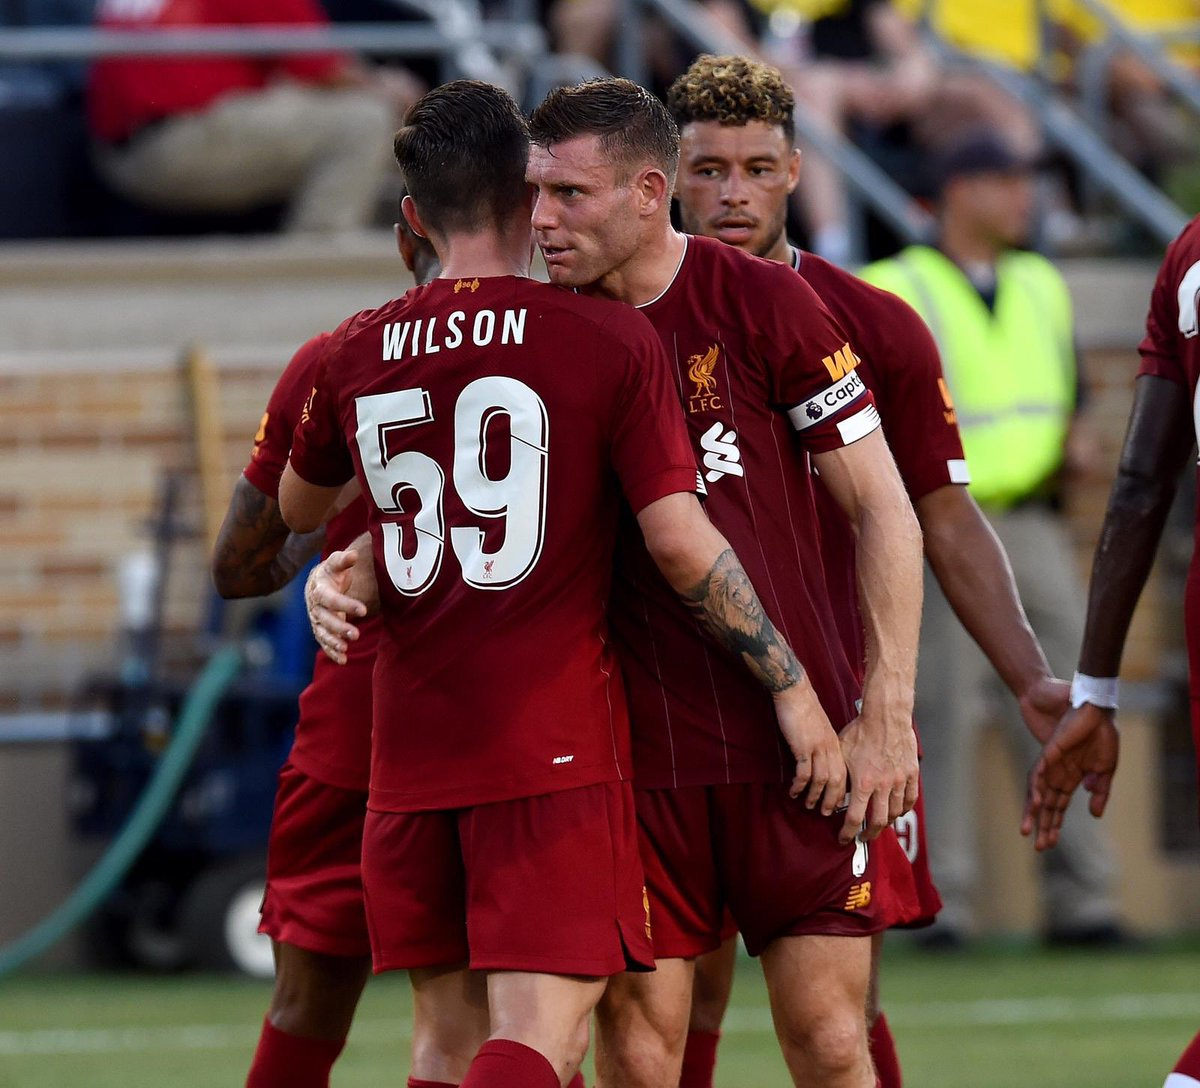 Great support in Indiana... not great that we turned up on the hottest day of the year 🥵🇺🇸 #YNWA #niceoneHarry https://t.co/3dHfxjDaQ0